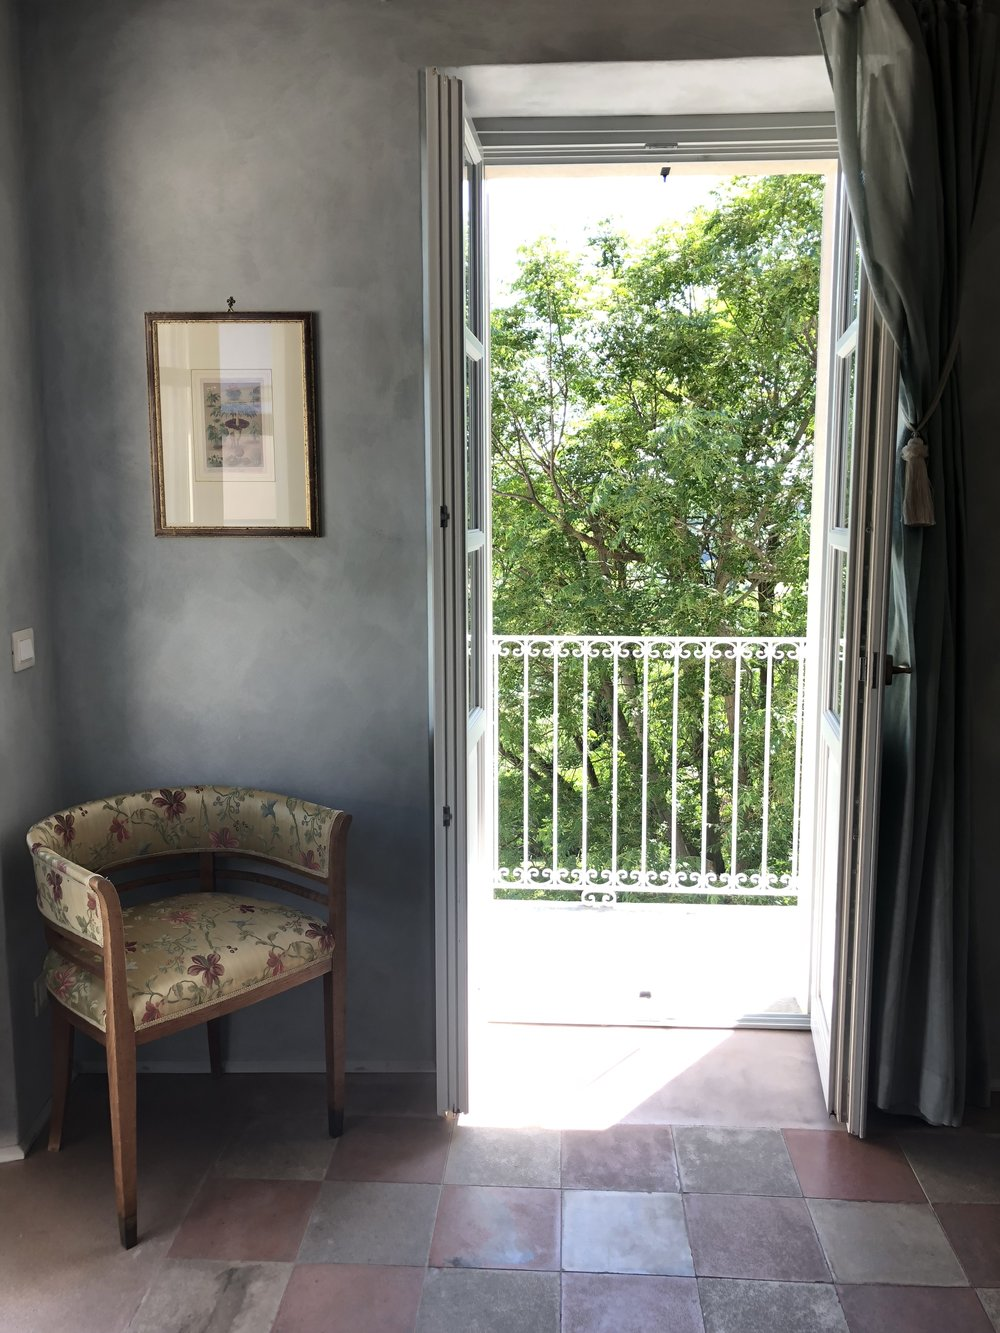 For two nights in Govone, we called  Ca Alfieri al 30  our home, a beautiful bed & breakfast run by an Italian couple. This is a small sitting area in our room with a balcony that overlooks the grounds.